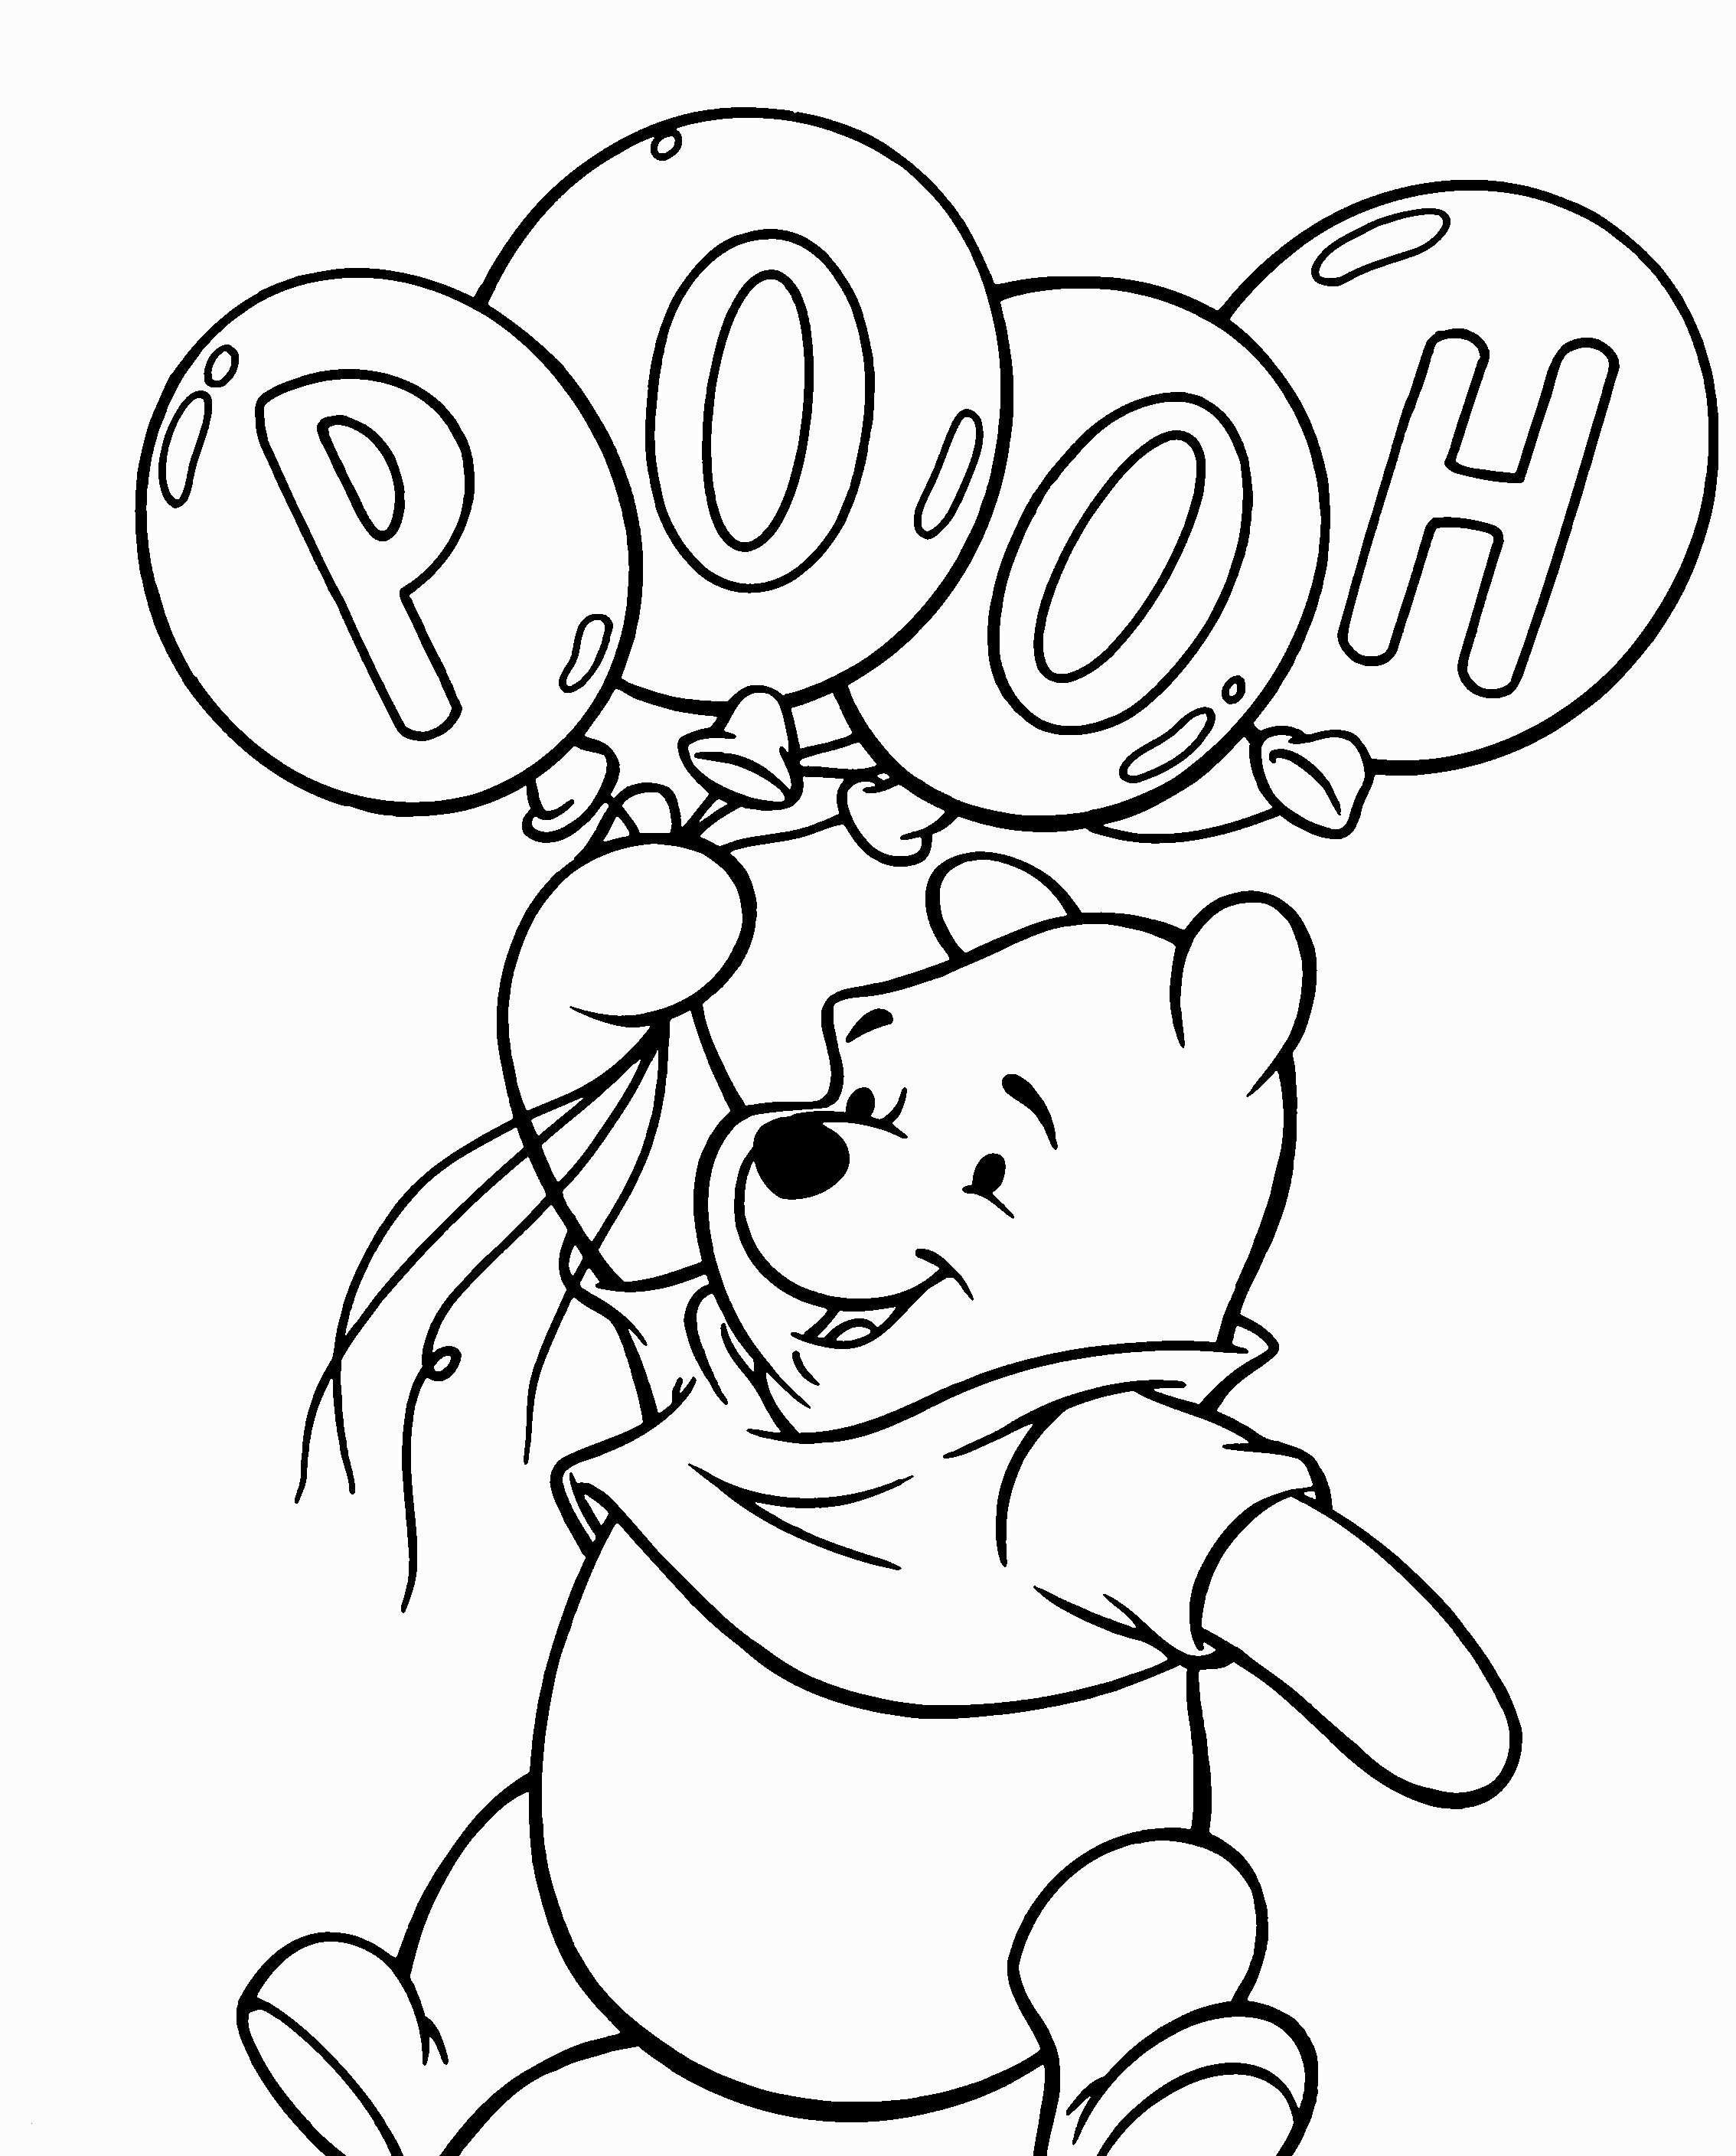 Malvorlagen Winnie Pooh Frisch Tigger From Winnie the Pooh Coloring Pages Lovely Disney Coloring Galerie